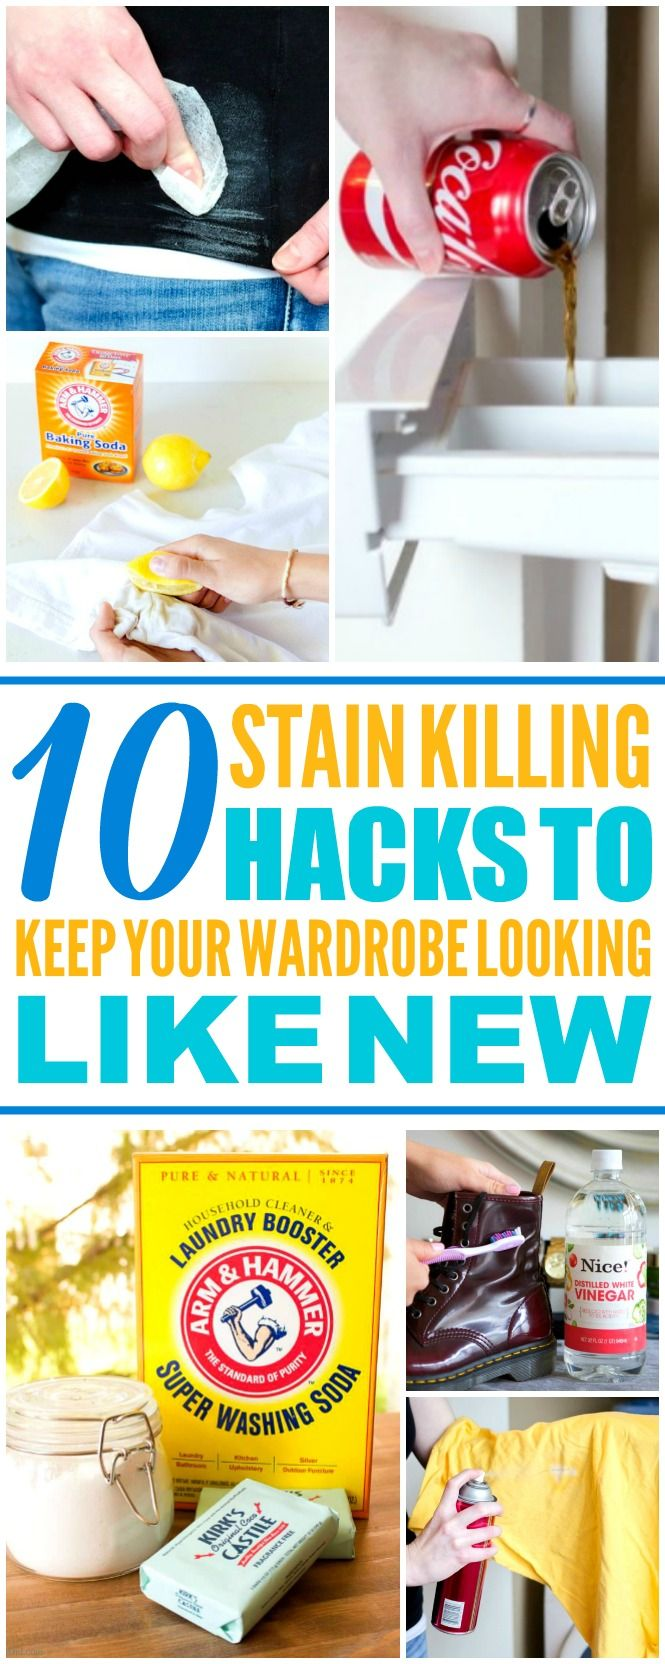 These 10 easy laundry hacks are THE BEST! I'm so happy I found these GREAT tips! Now I have some great ways to get rid of stains! Definitely pinning!